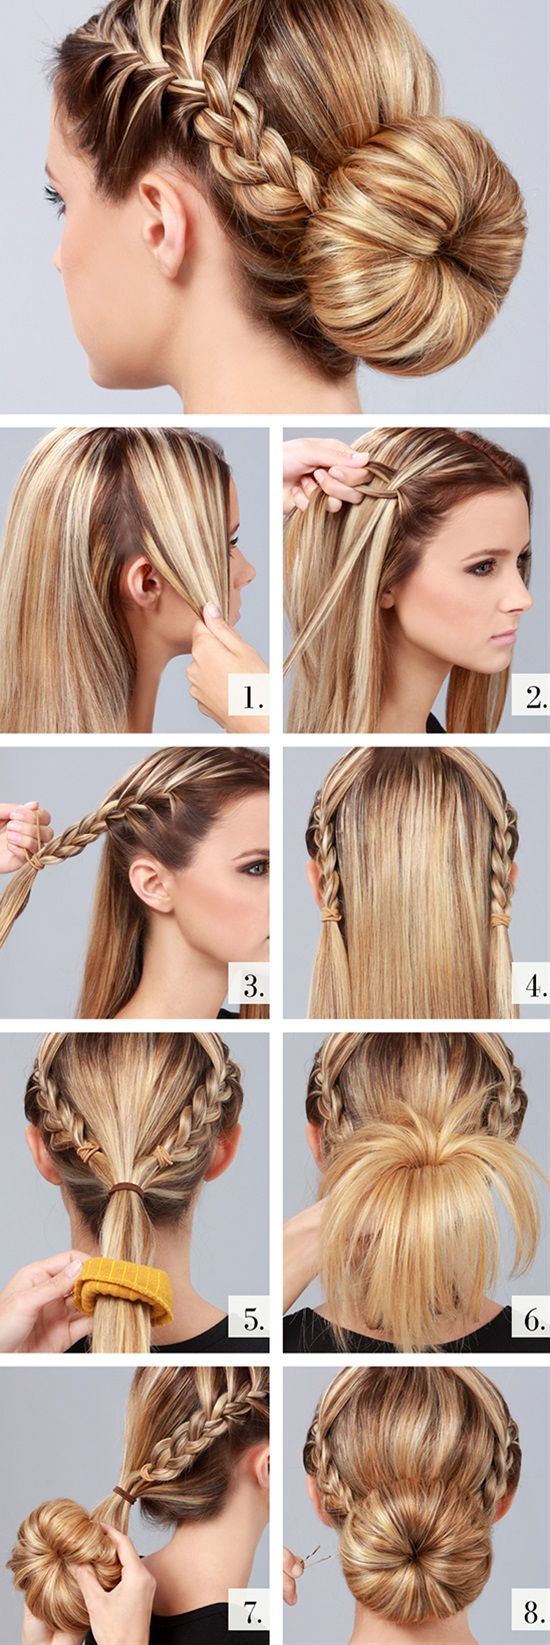 When it comes to styling hair, you simply cannot go wrong with braids. Whether y...